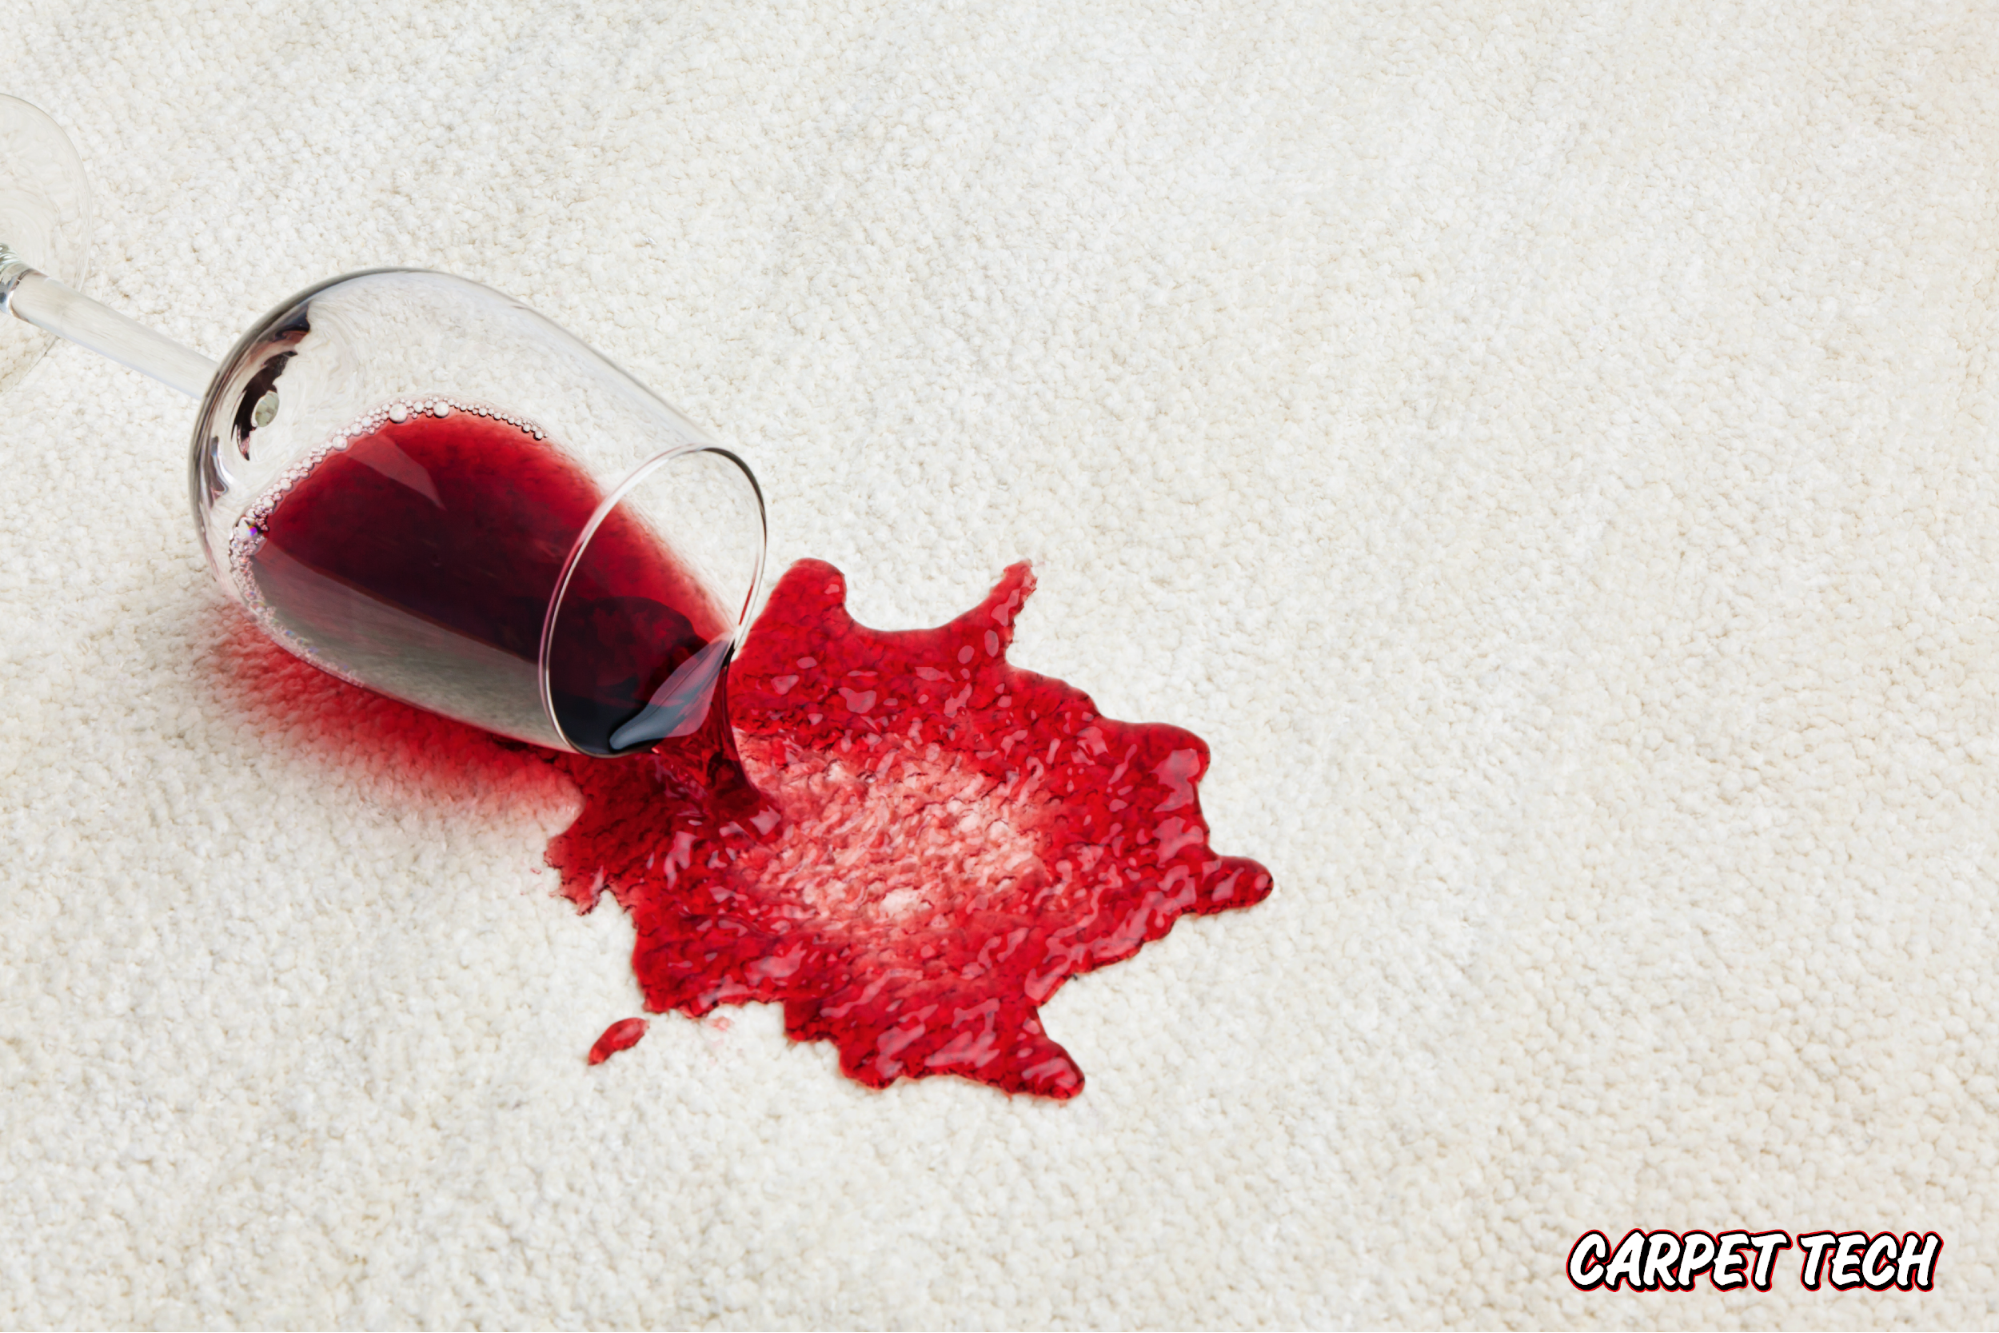 Halloween Aftermath: How to Properly Clean Upholstery Stains